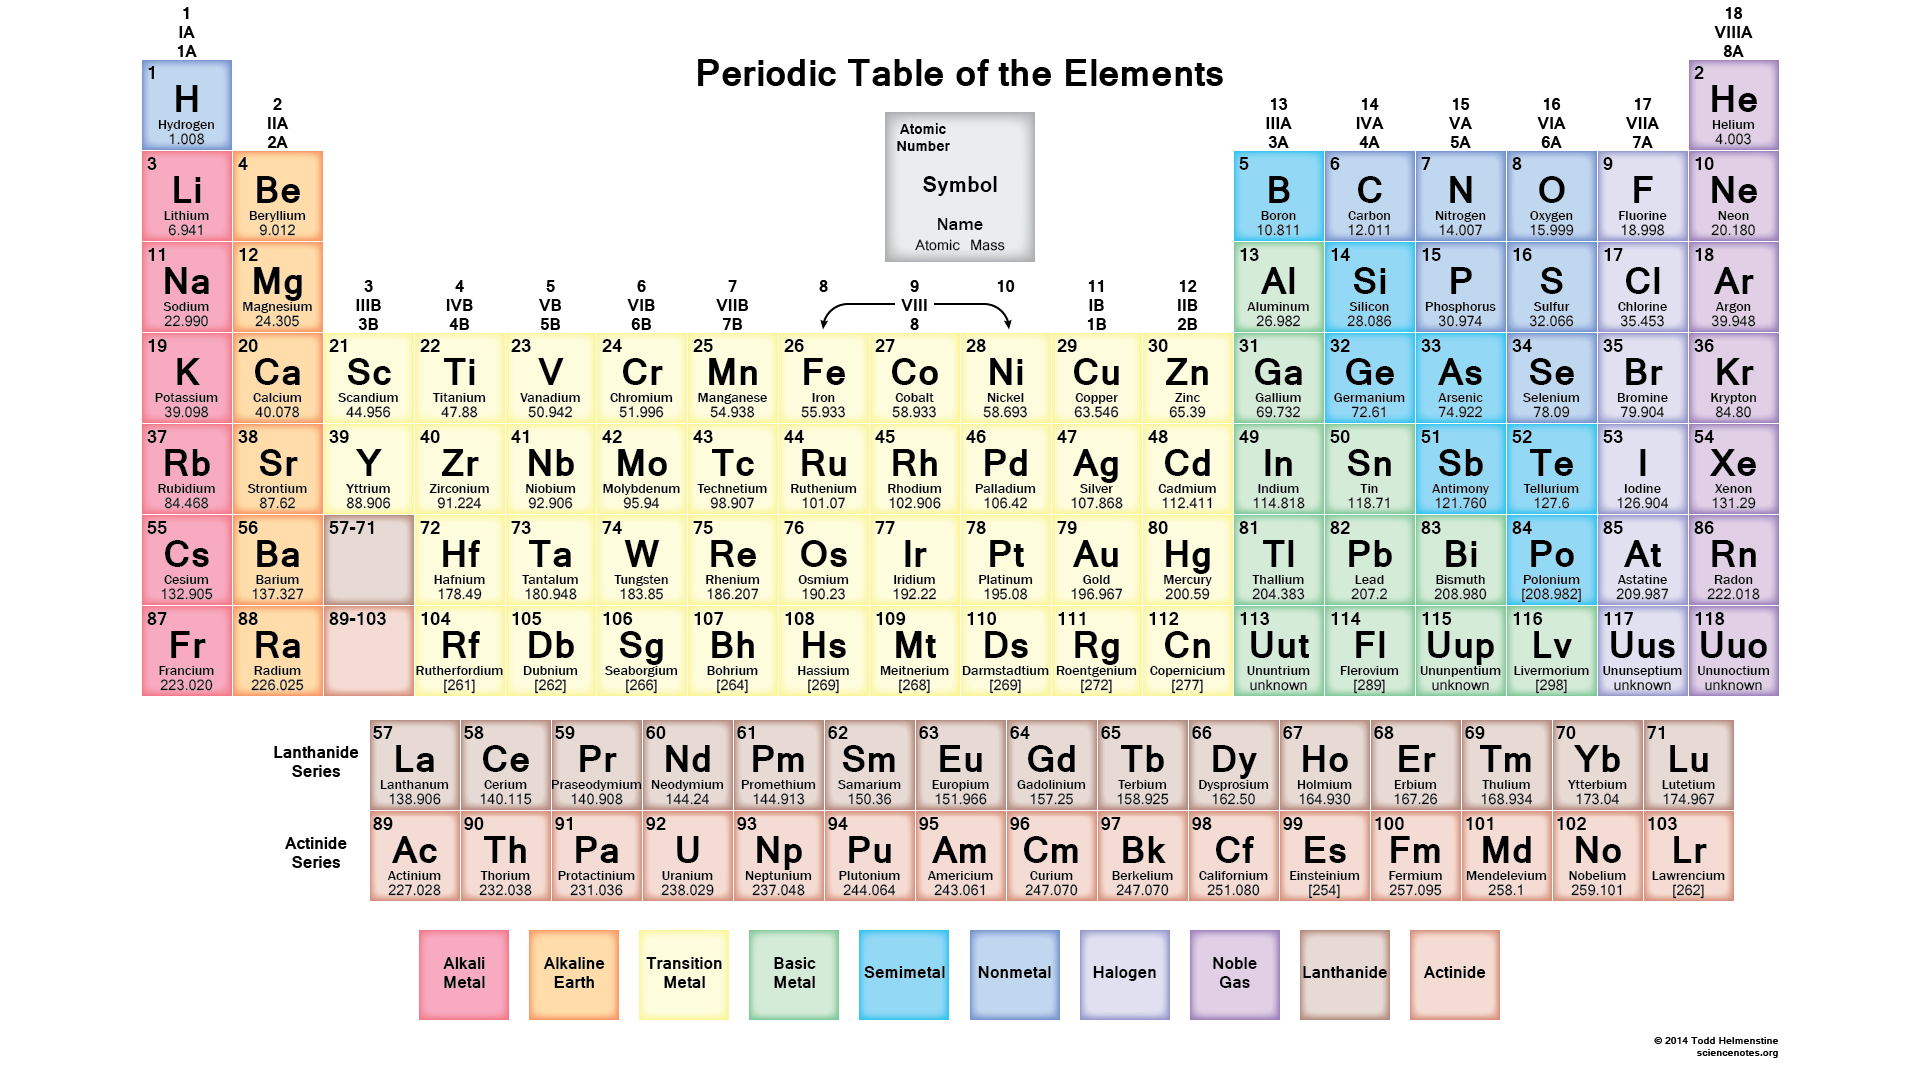 Periodic table of the elements the dutch paradigm pperiodictableg urtaz Choice Image